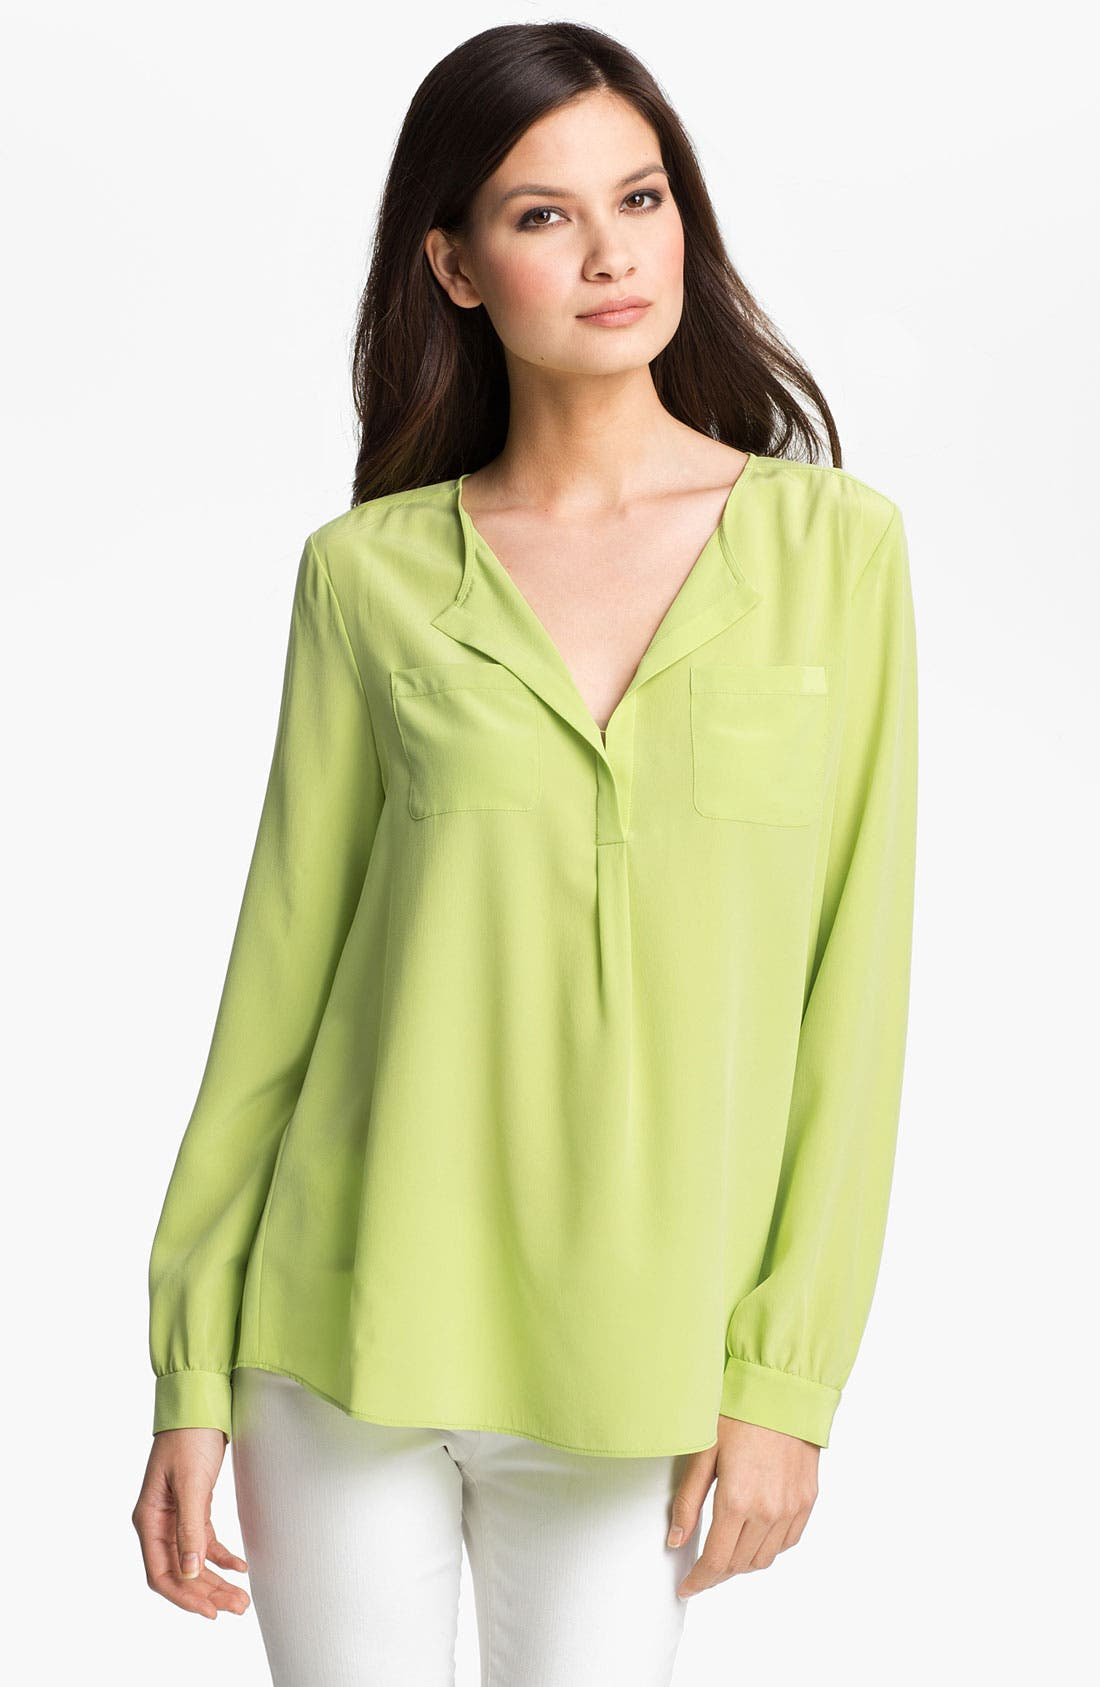 Alternate Image 1 Selected - Lafayette 148 New York 'Samantha' Sandwashed Silk Blouse